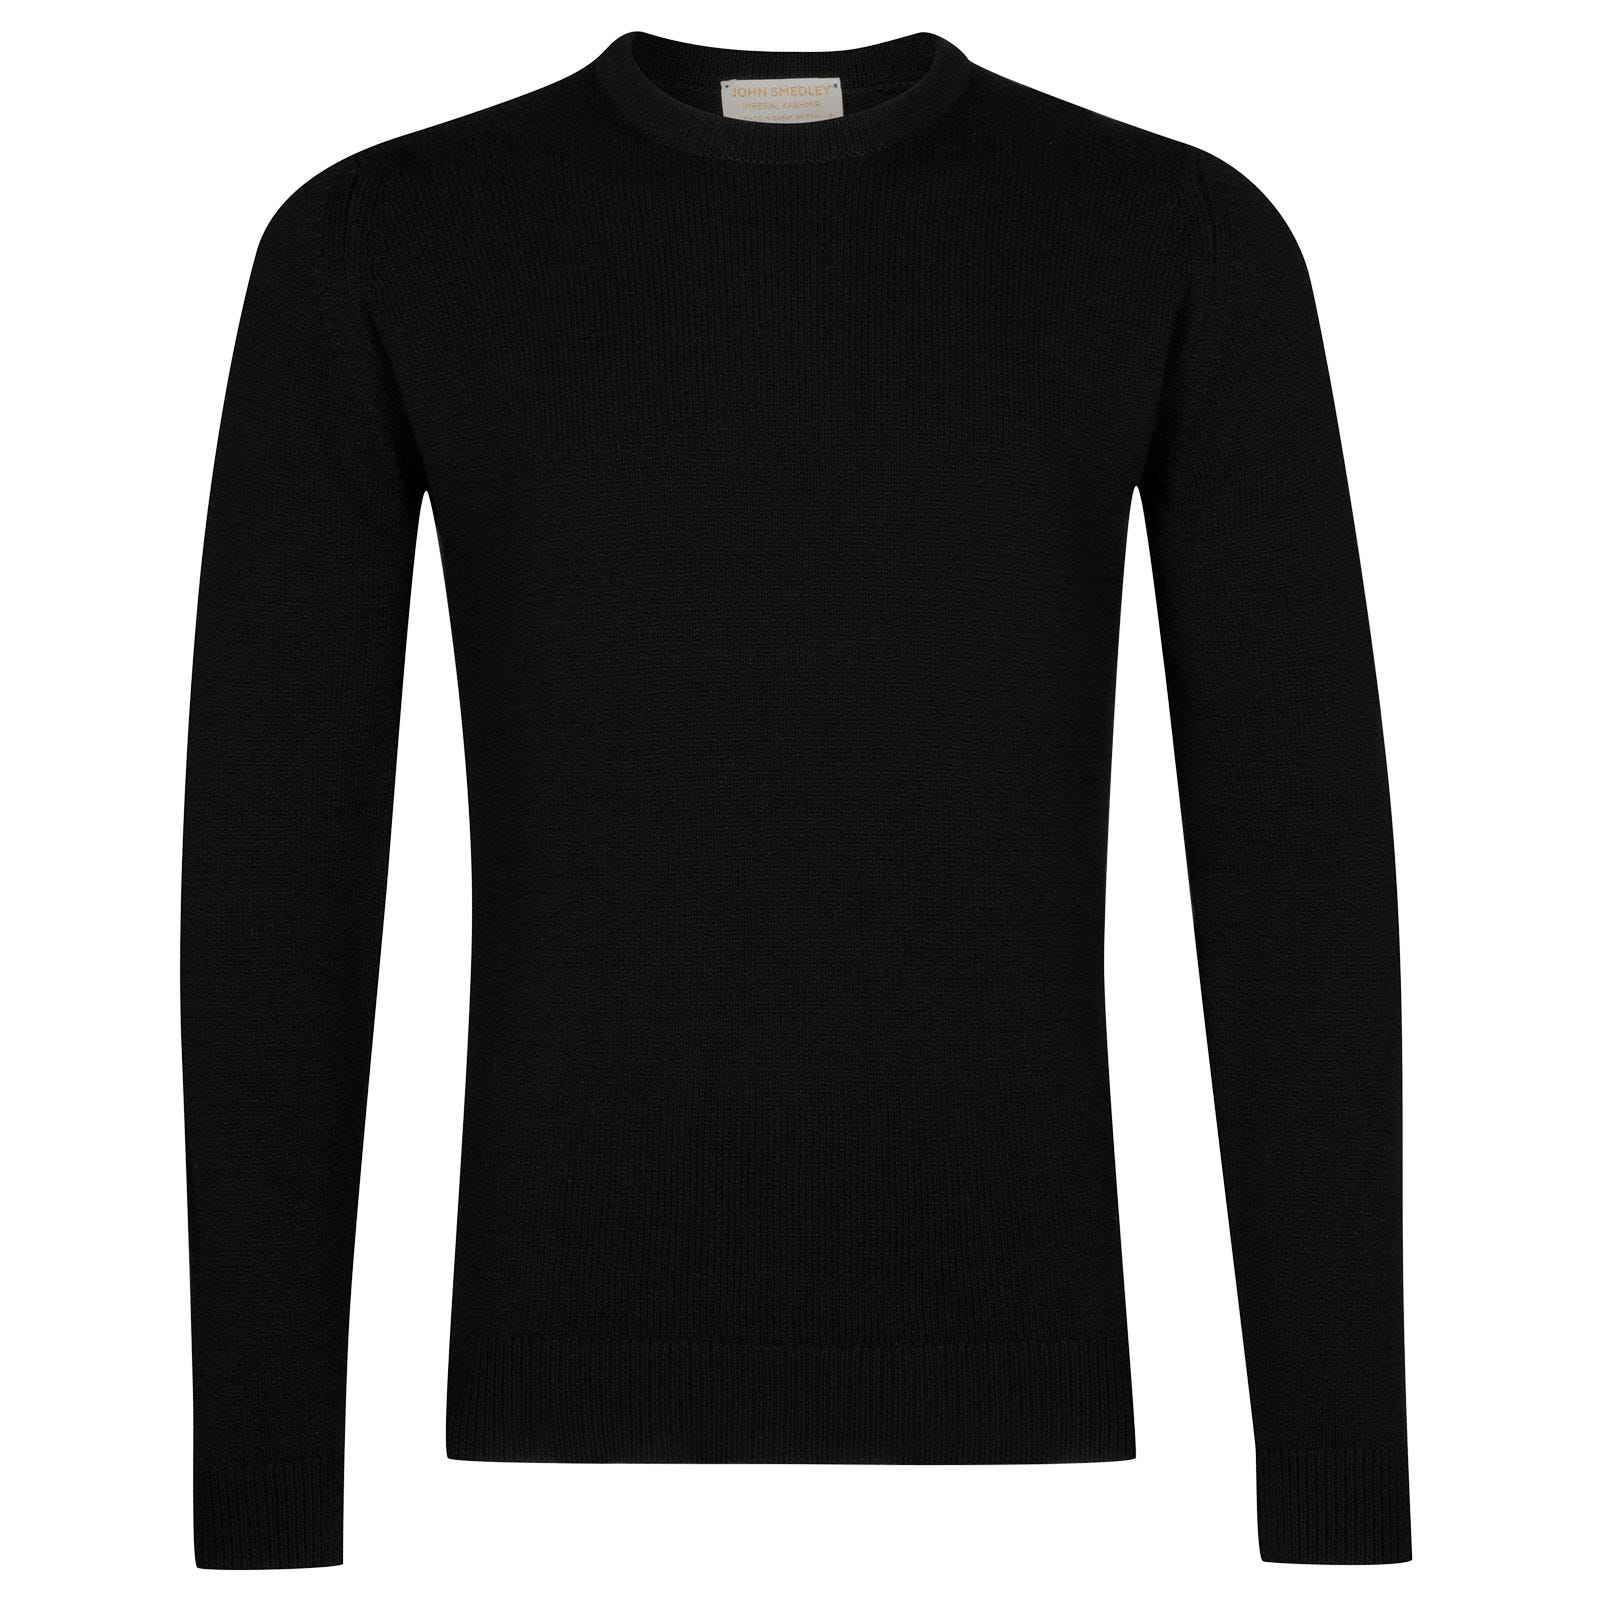 John Smedley Crowford Wool and Cashmere Pullover in Black-XXL